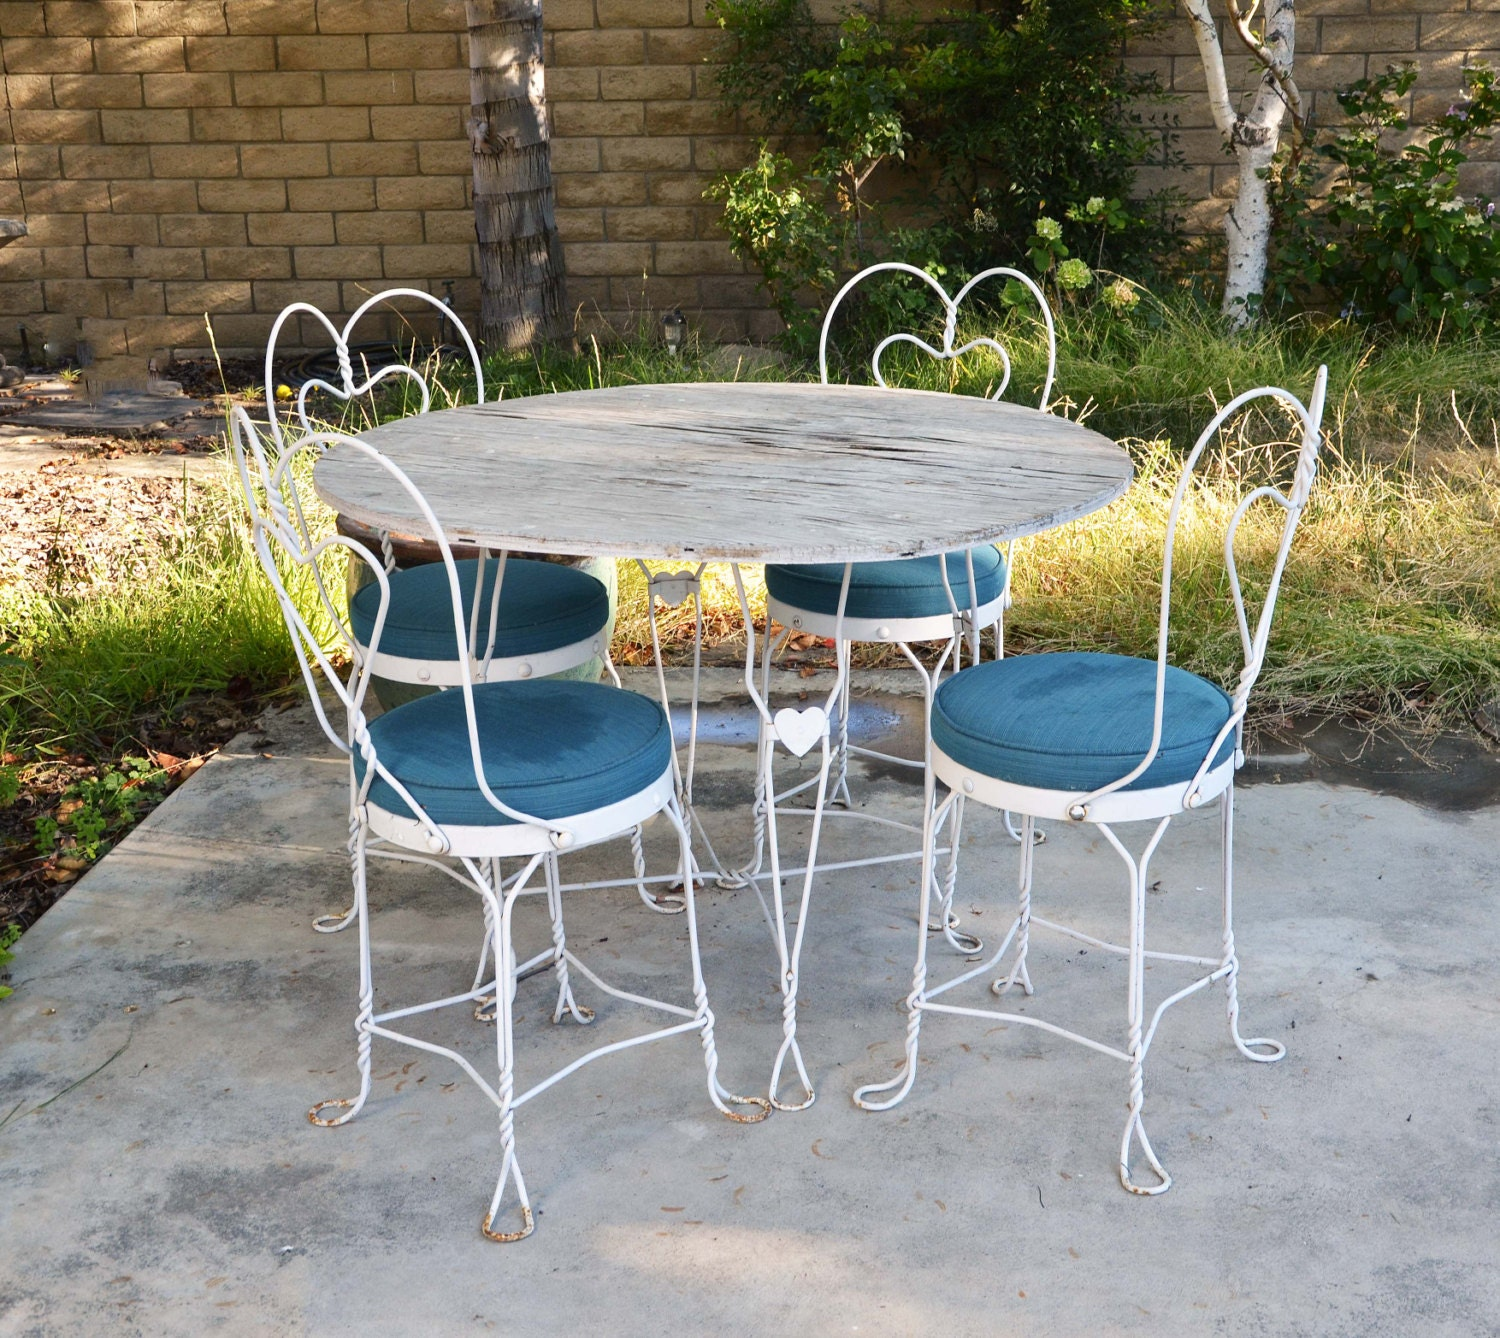 Vtg white mid century wrought iron ice cream table chairs Metal patio furniture vintage